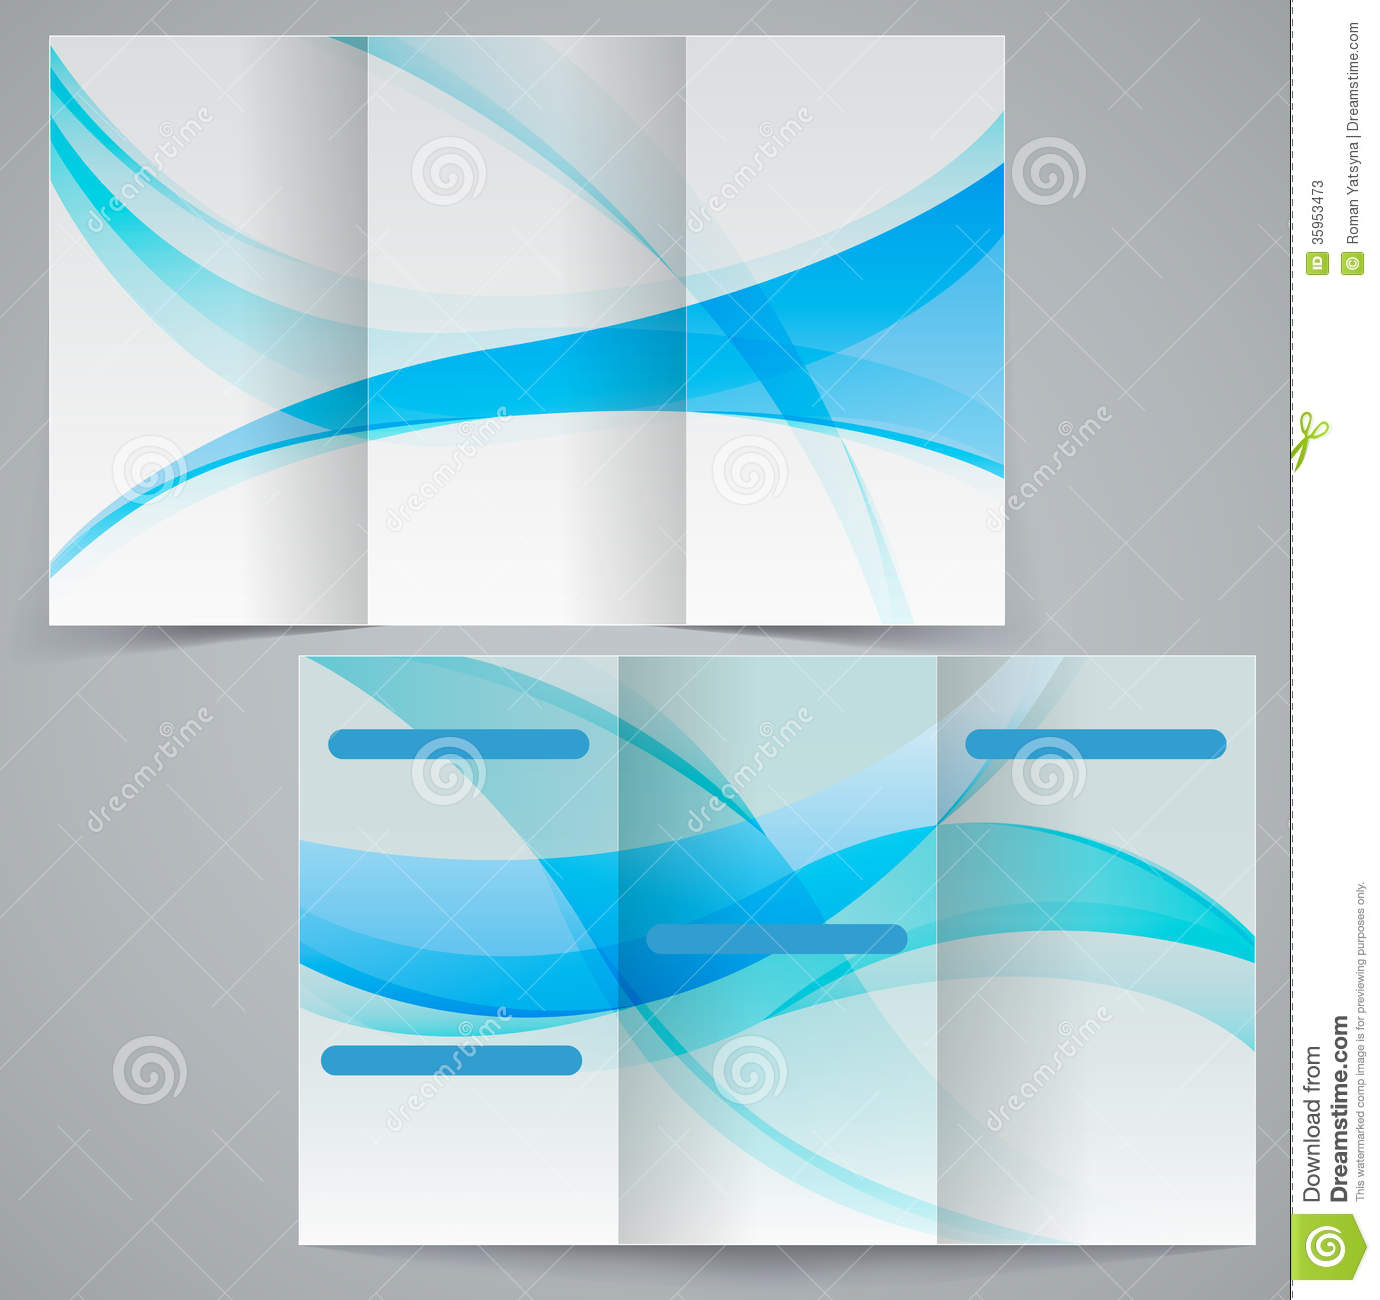 Tri fold business brochure template vector blue d stock for Brochure free templates